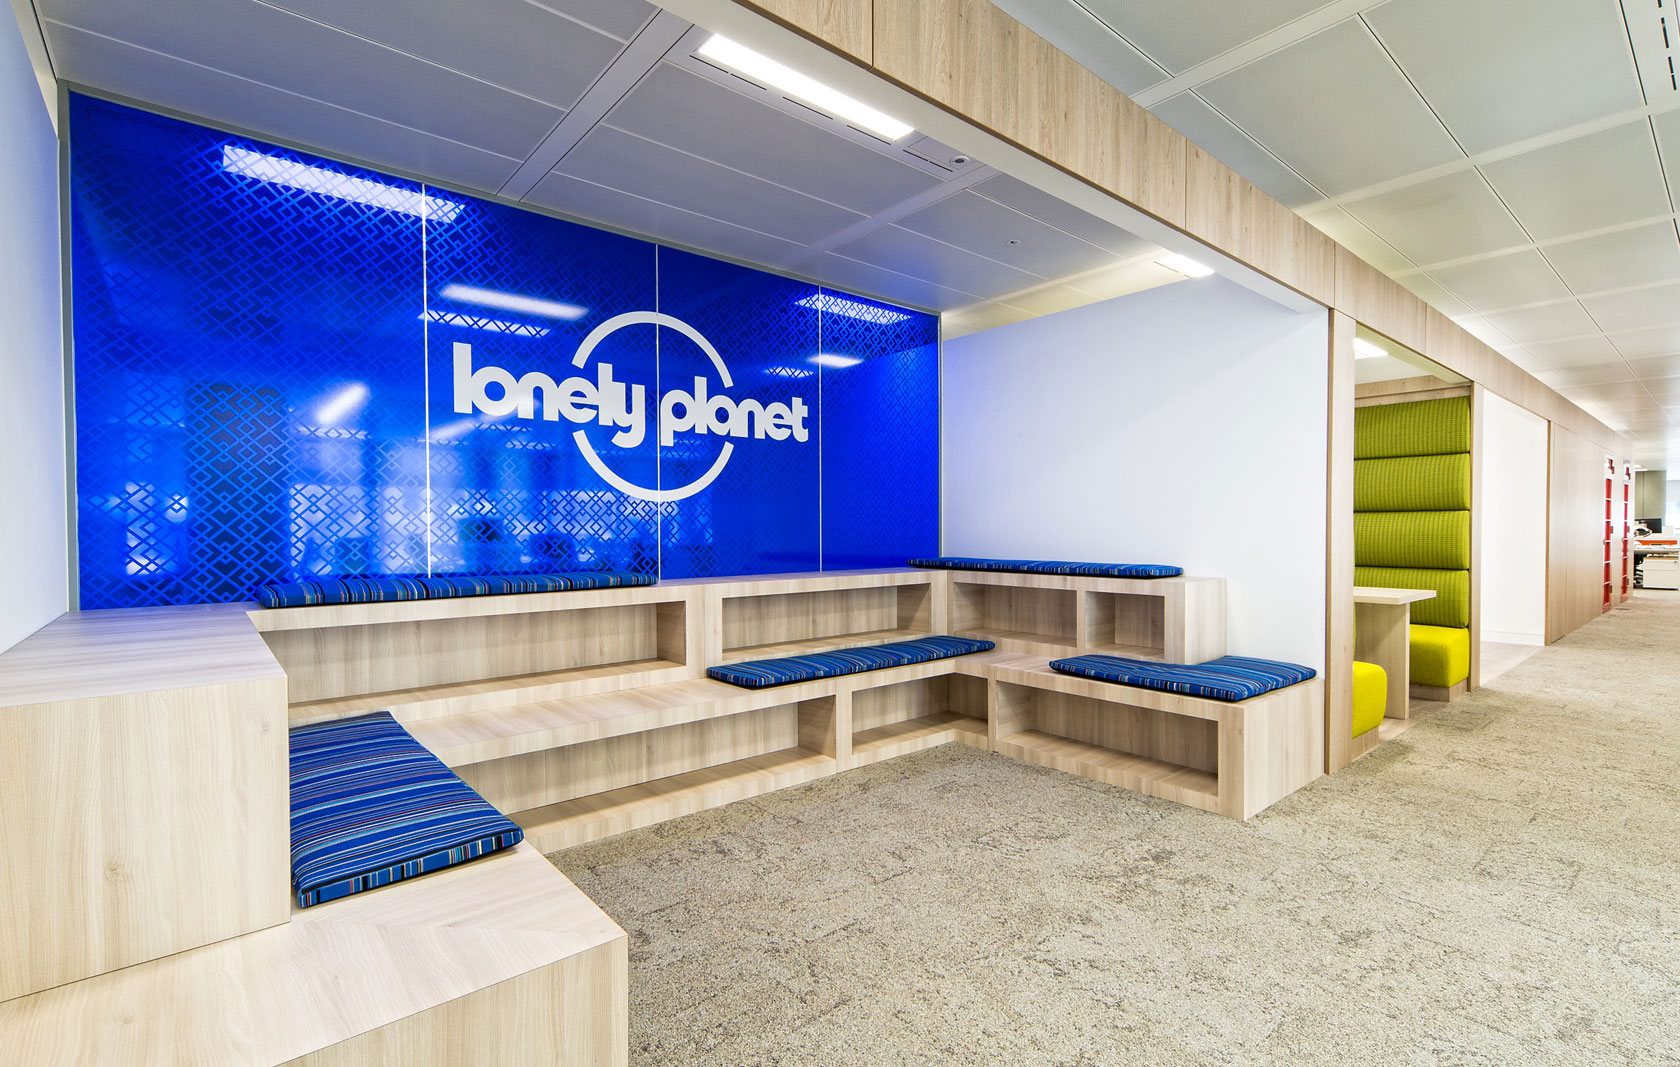 Inside Lonely Planet's Stylish London Office